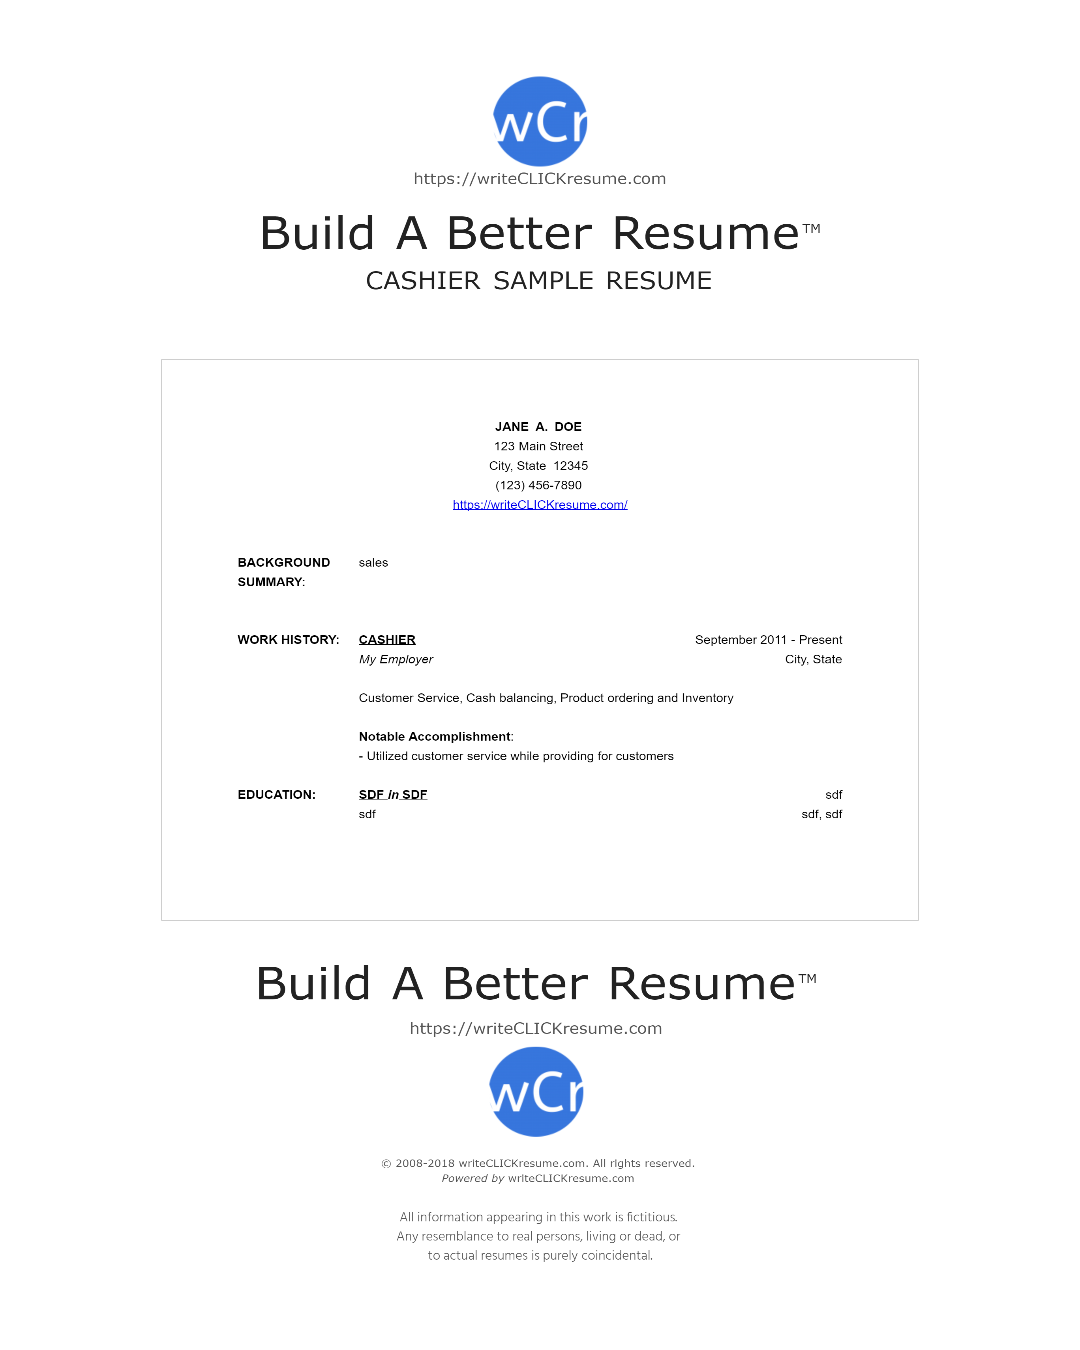 Sample Cashier In Virg Resume By WriteclickresumeCom  Resume